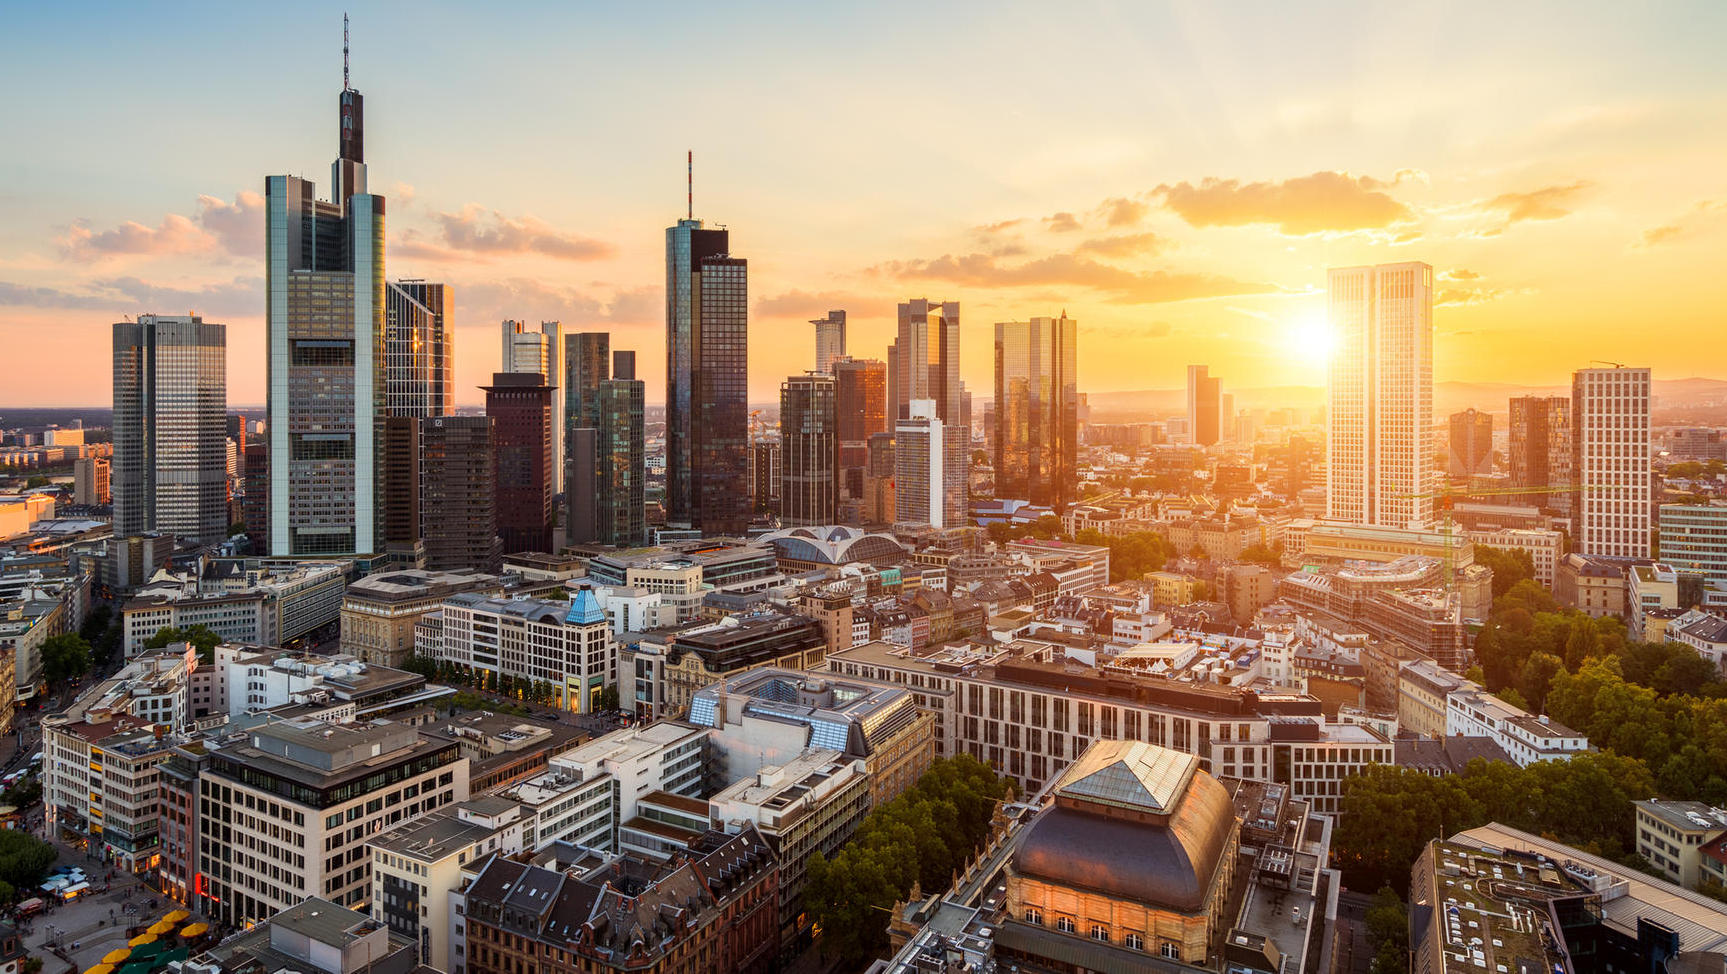 Frankfurt am Main Skyline (Quelle: Getty Images/David J. Engel)